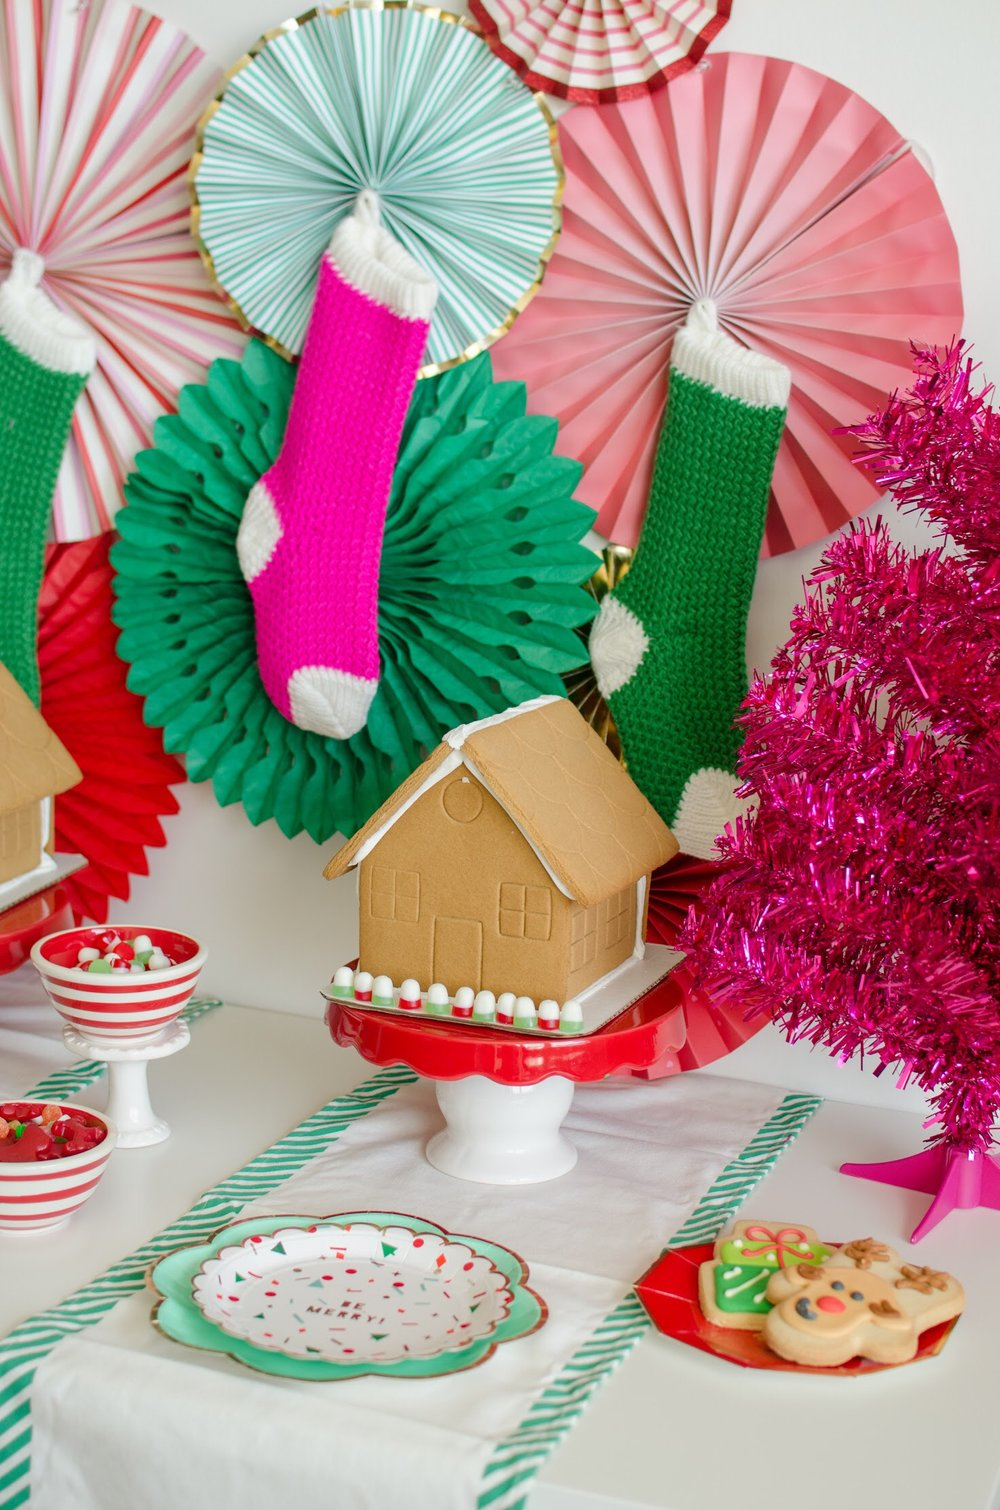 Create the perfect Gingerbread House Party backdrop with knit stockings and paper fans in bright holiday colors. See the full decorating details and party set up design on Mint Event Design www.minteventdesign.com #gingerbreadhouse #holidayparty #holidays #partyideas #christmasparty #holidaypartyideas #kidsparty